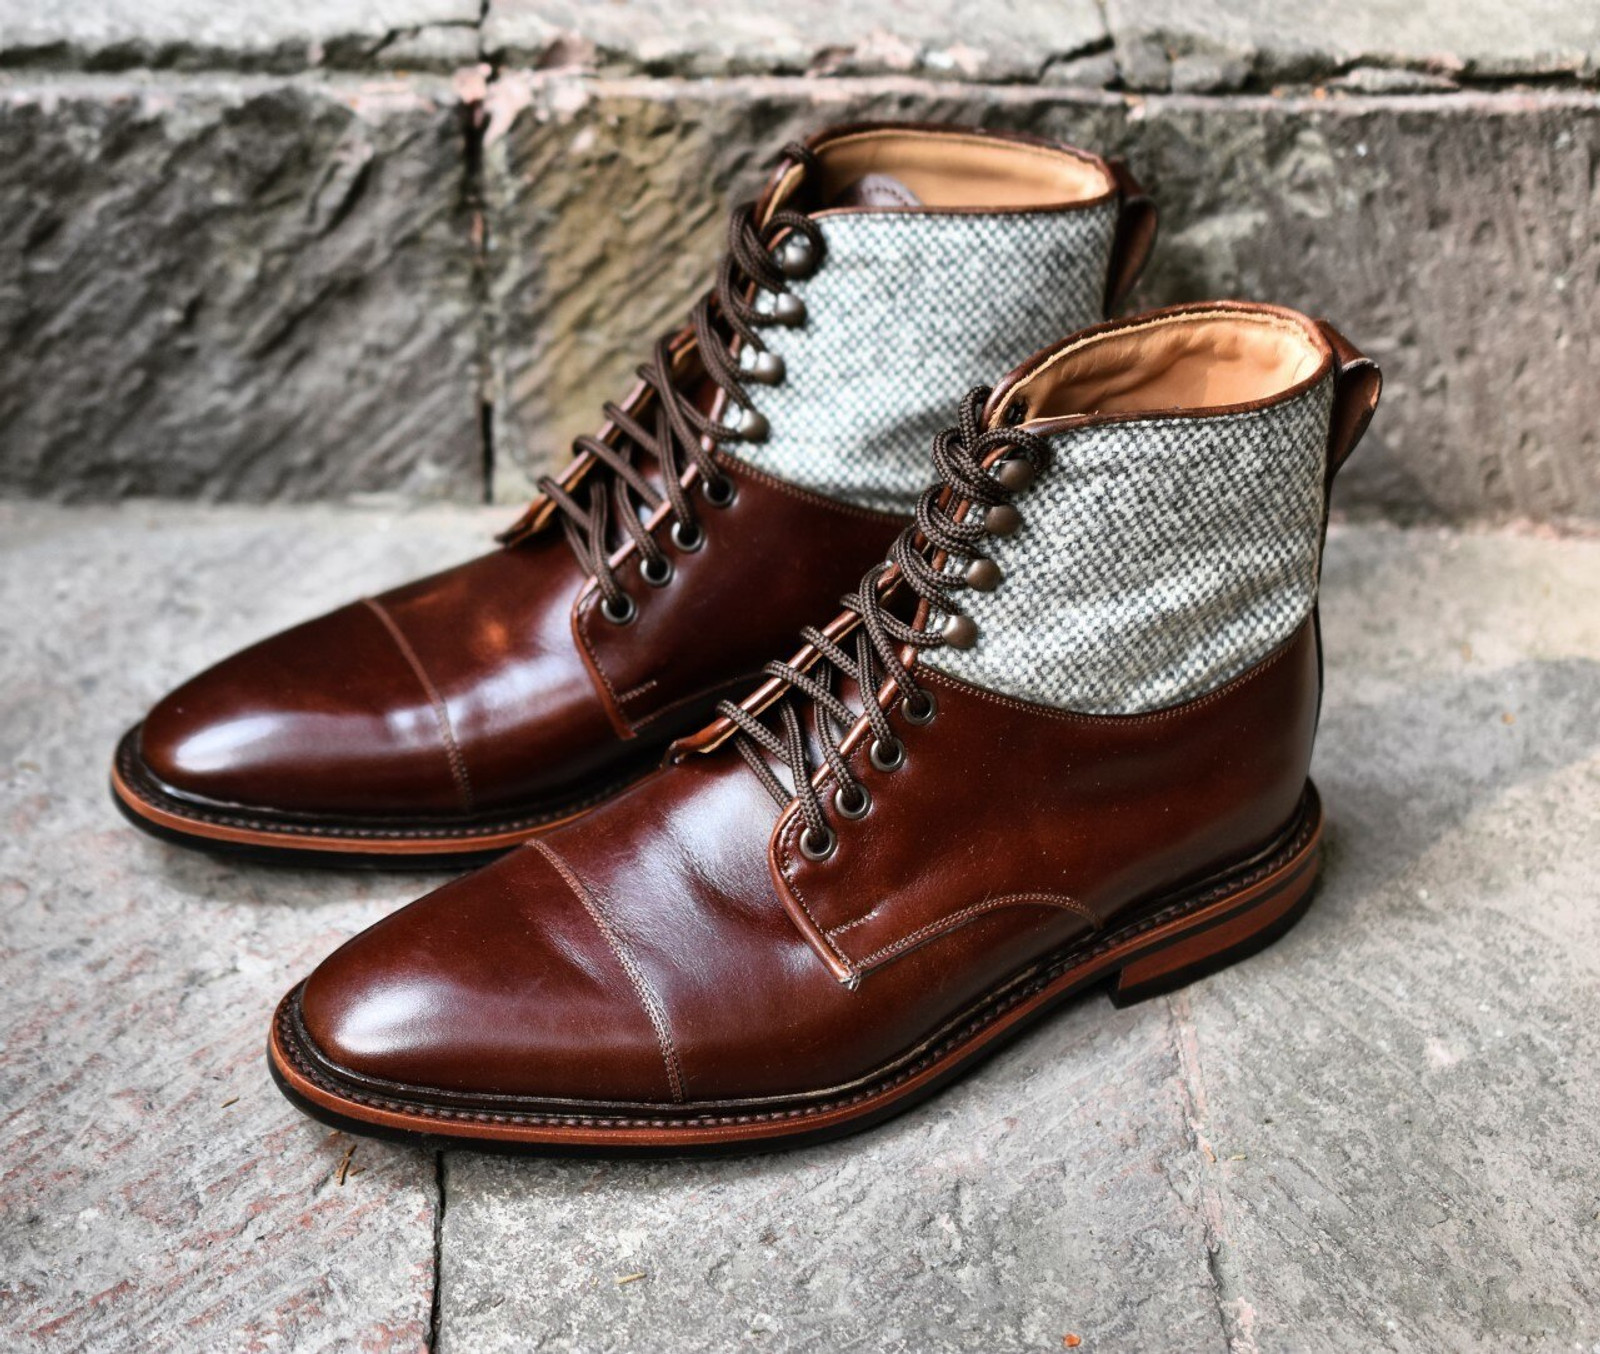 THE JACKSON BOOTS